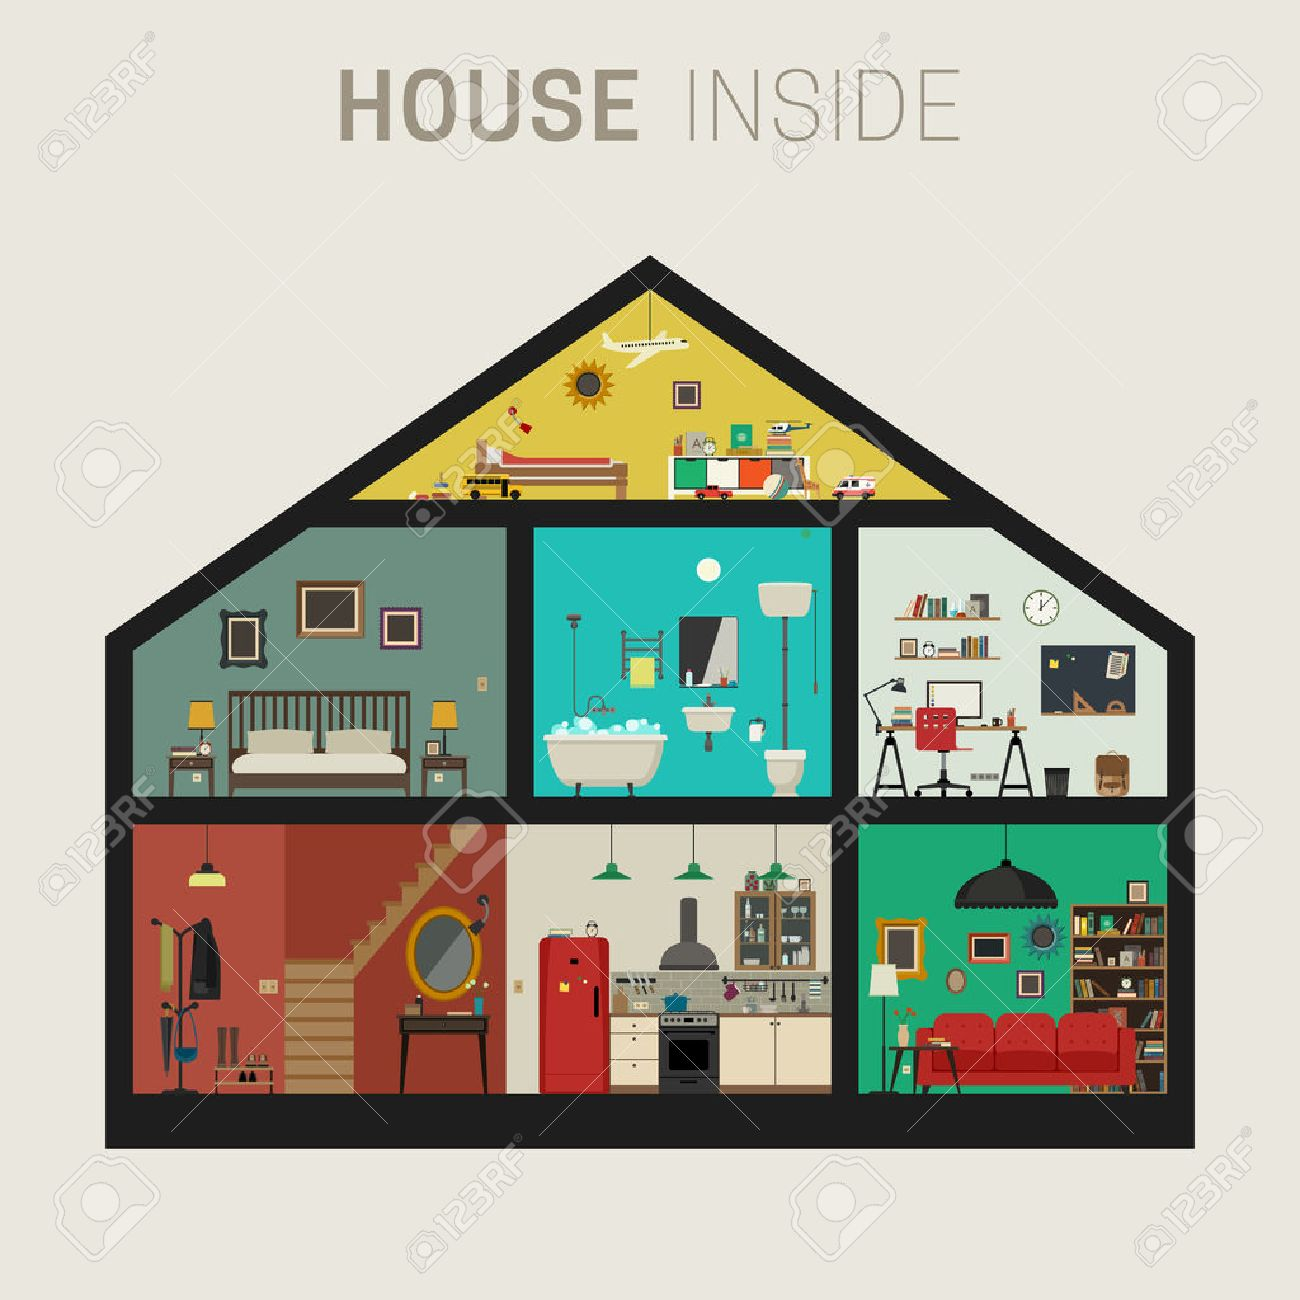 House inside interior vector flat house with set of basic rooms house in cut